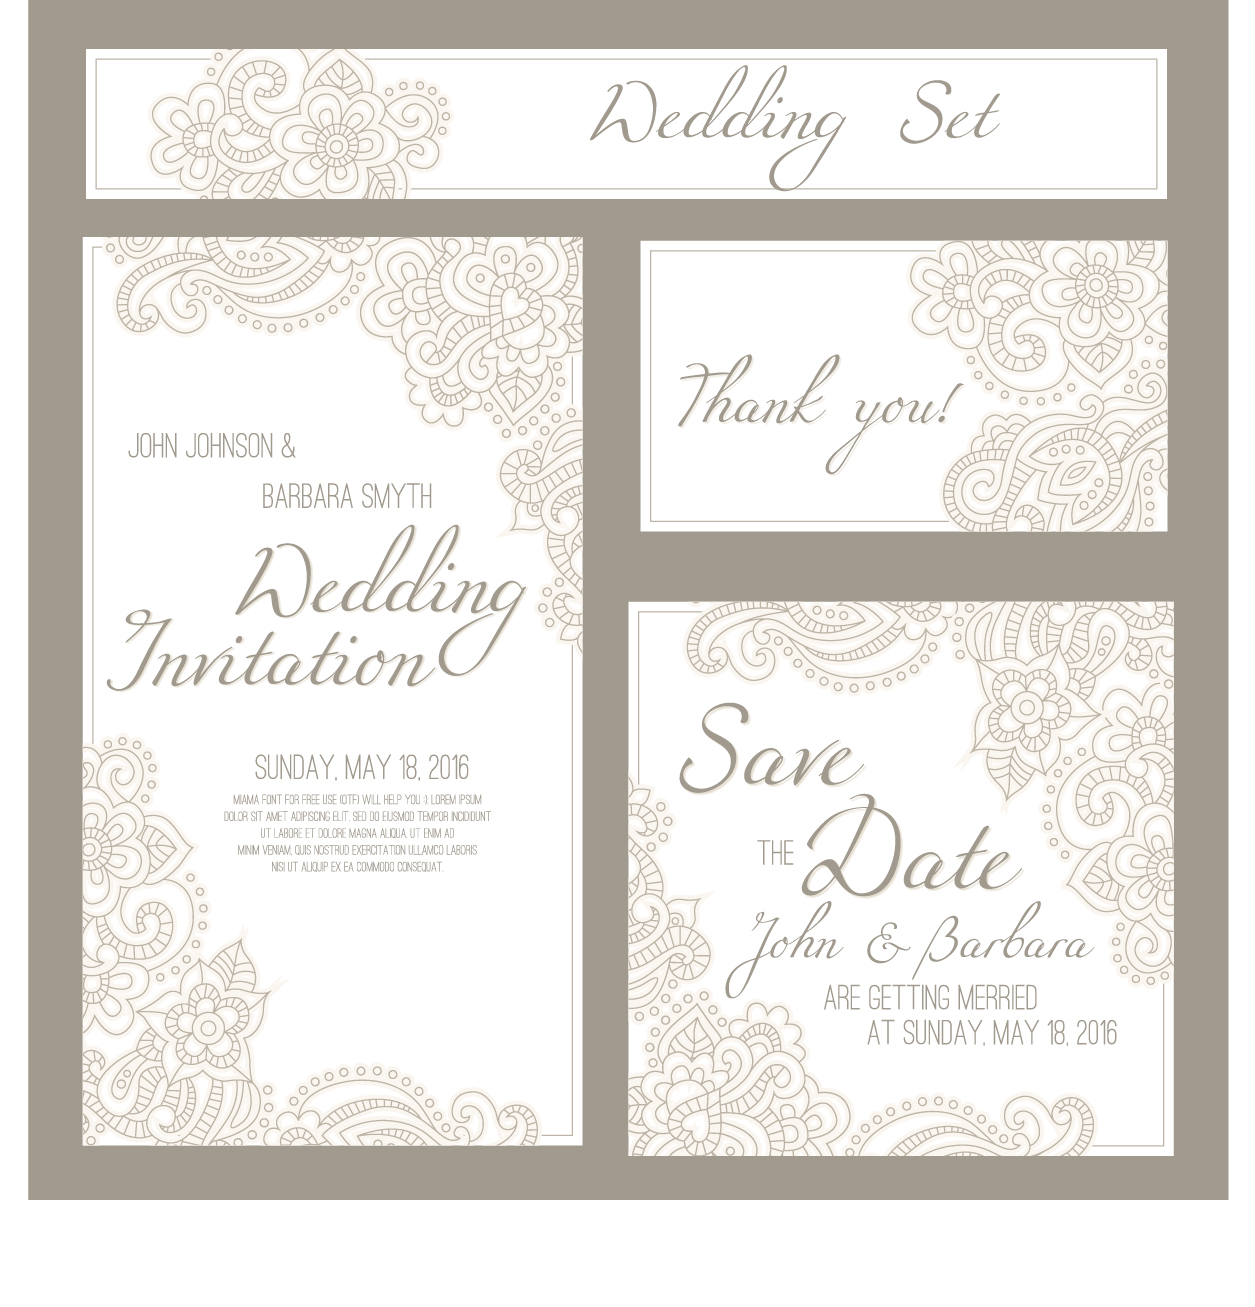 Wedding invitation card with banner vector - WeLoveSoLo